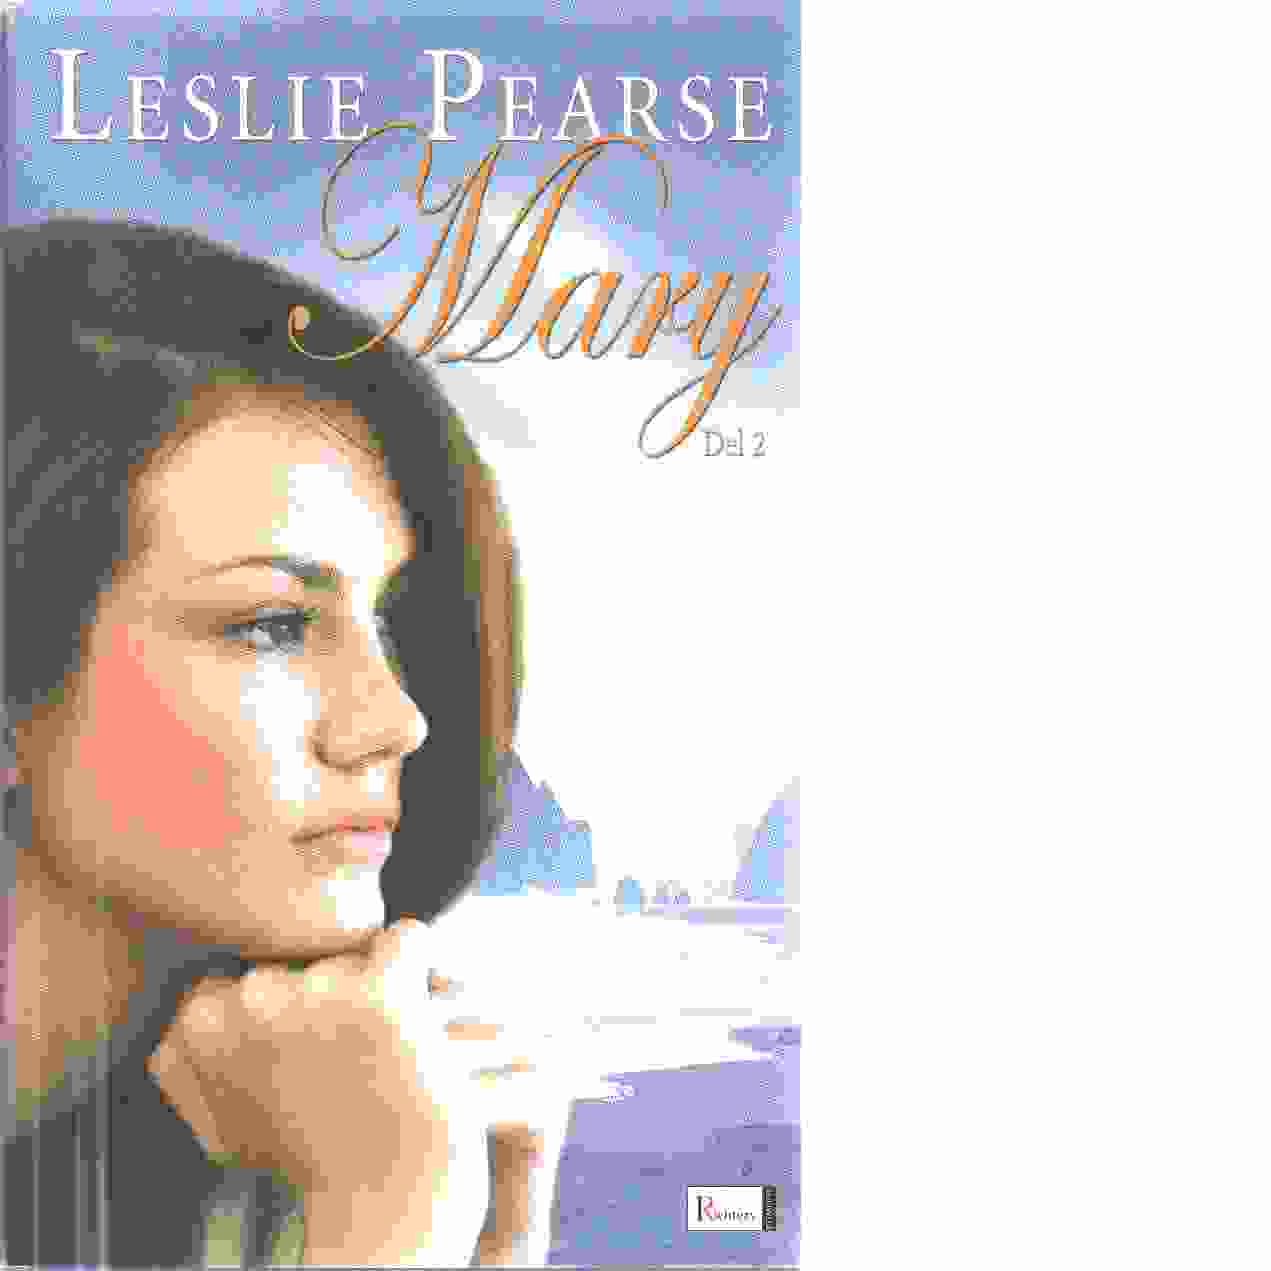 Mary. D. 1 - Pearse, Lesley